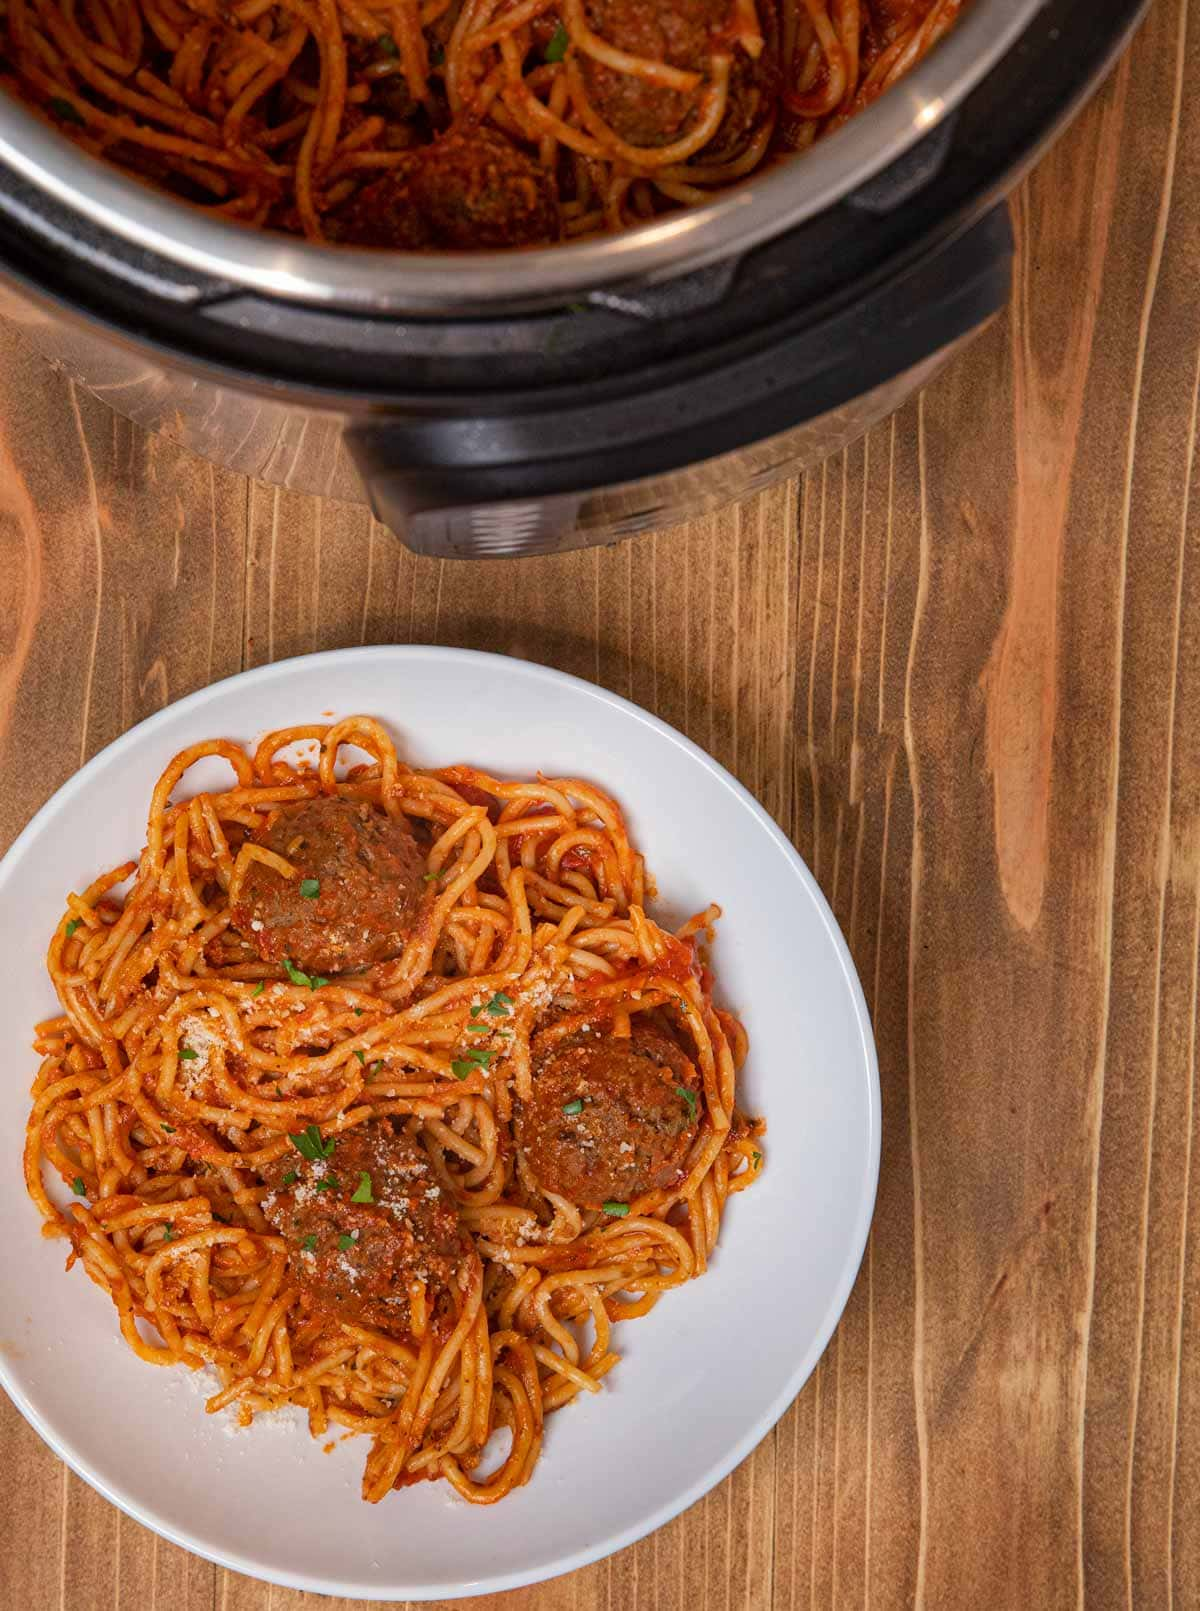 Instant Pot Spaghetti and Meatballs serving on plate